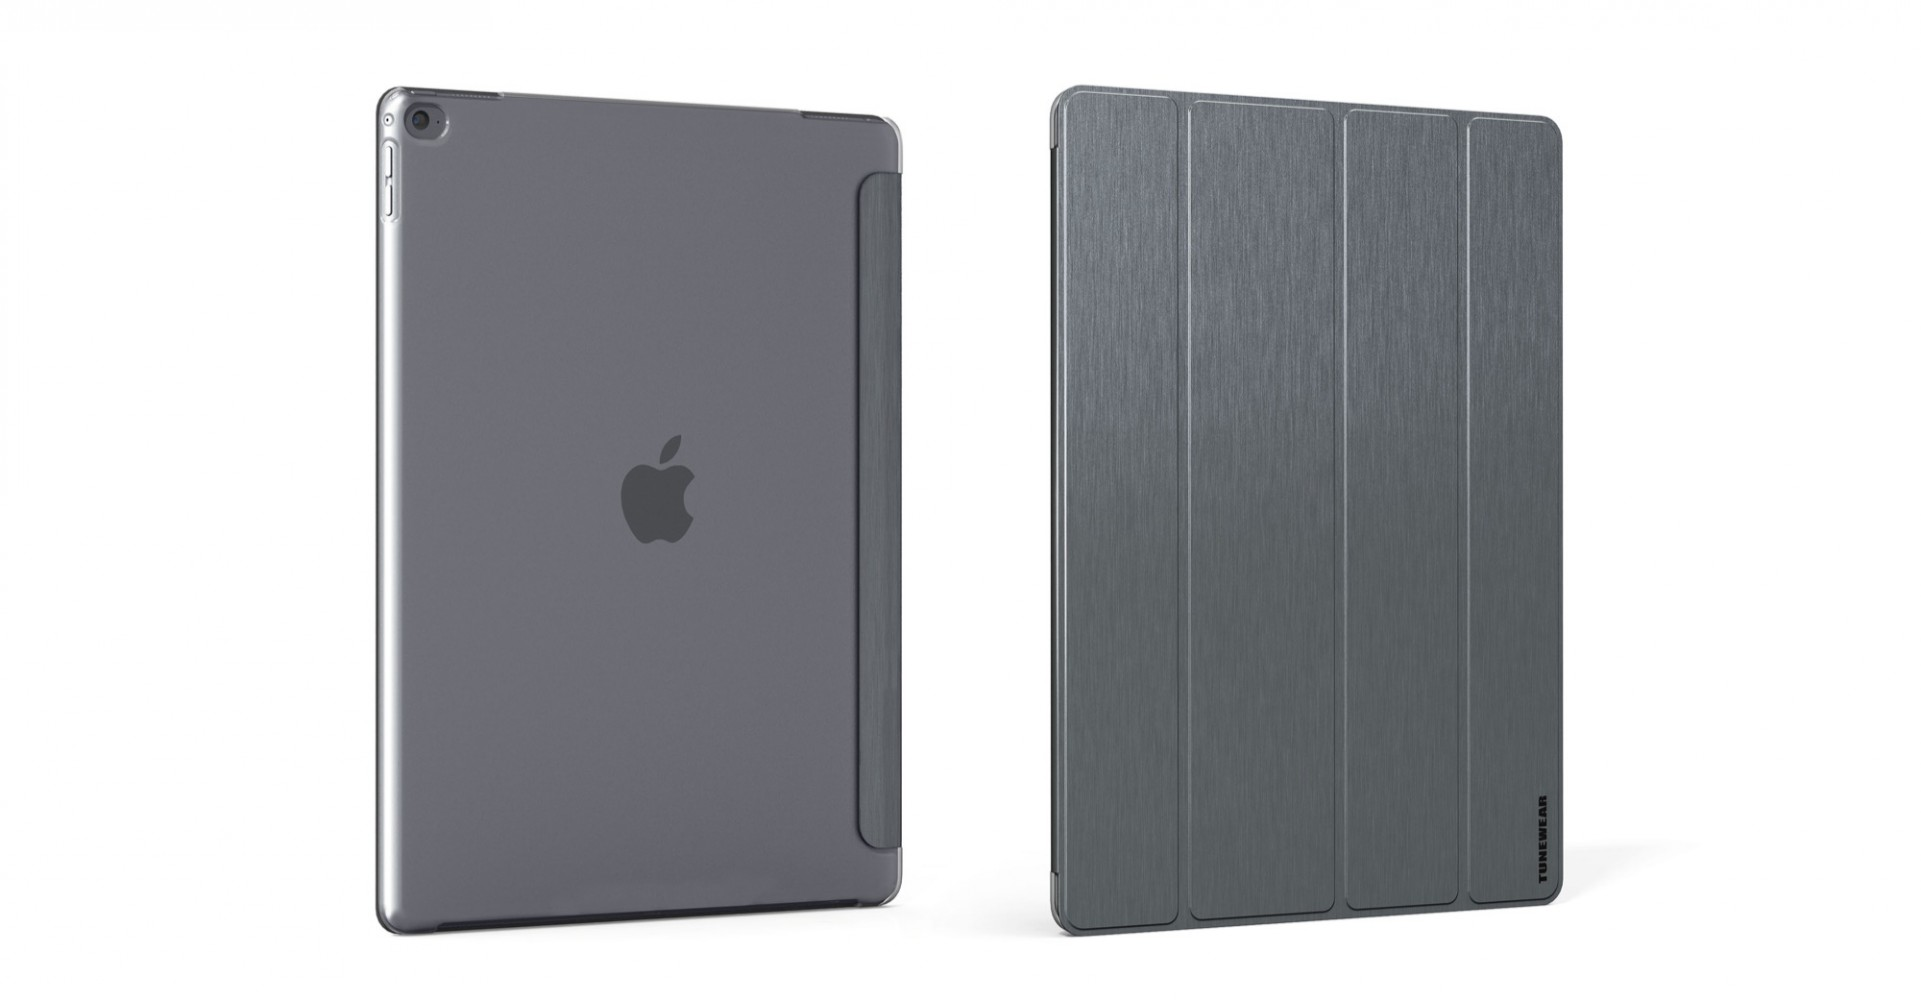 Brushed Metal Look SHELL with Front cover for iPad Pro (12.9inch). Loading zoom (12.9inch